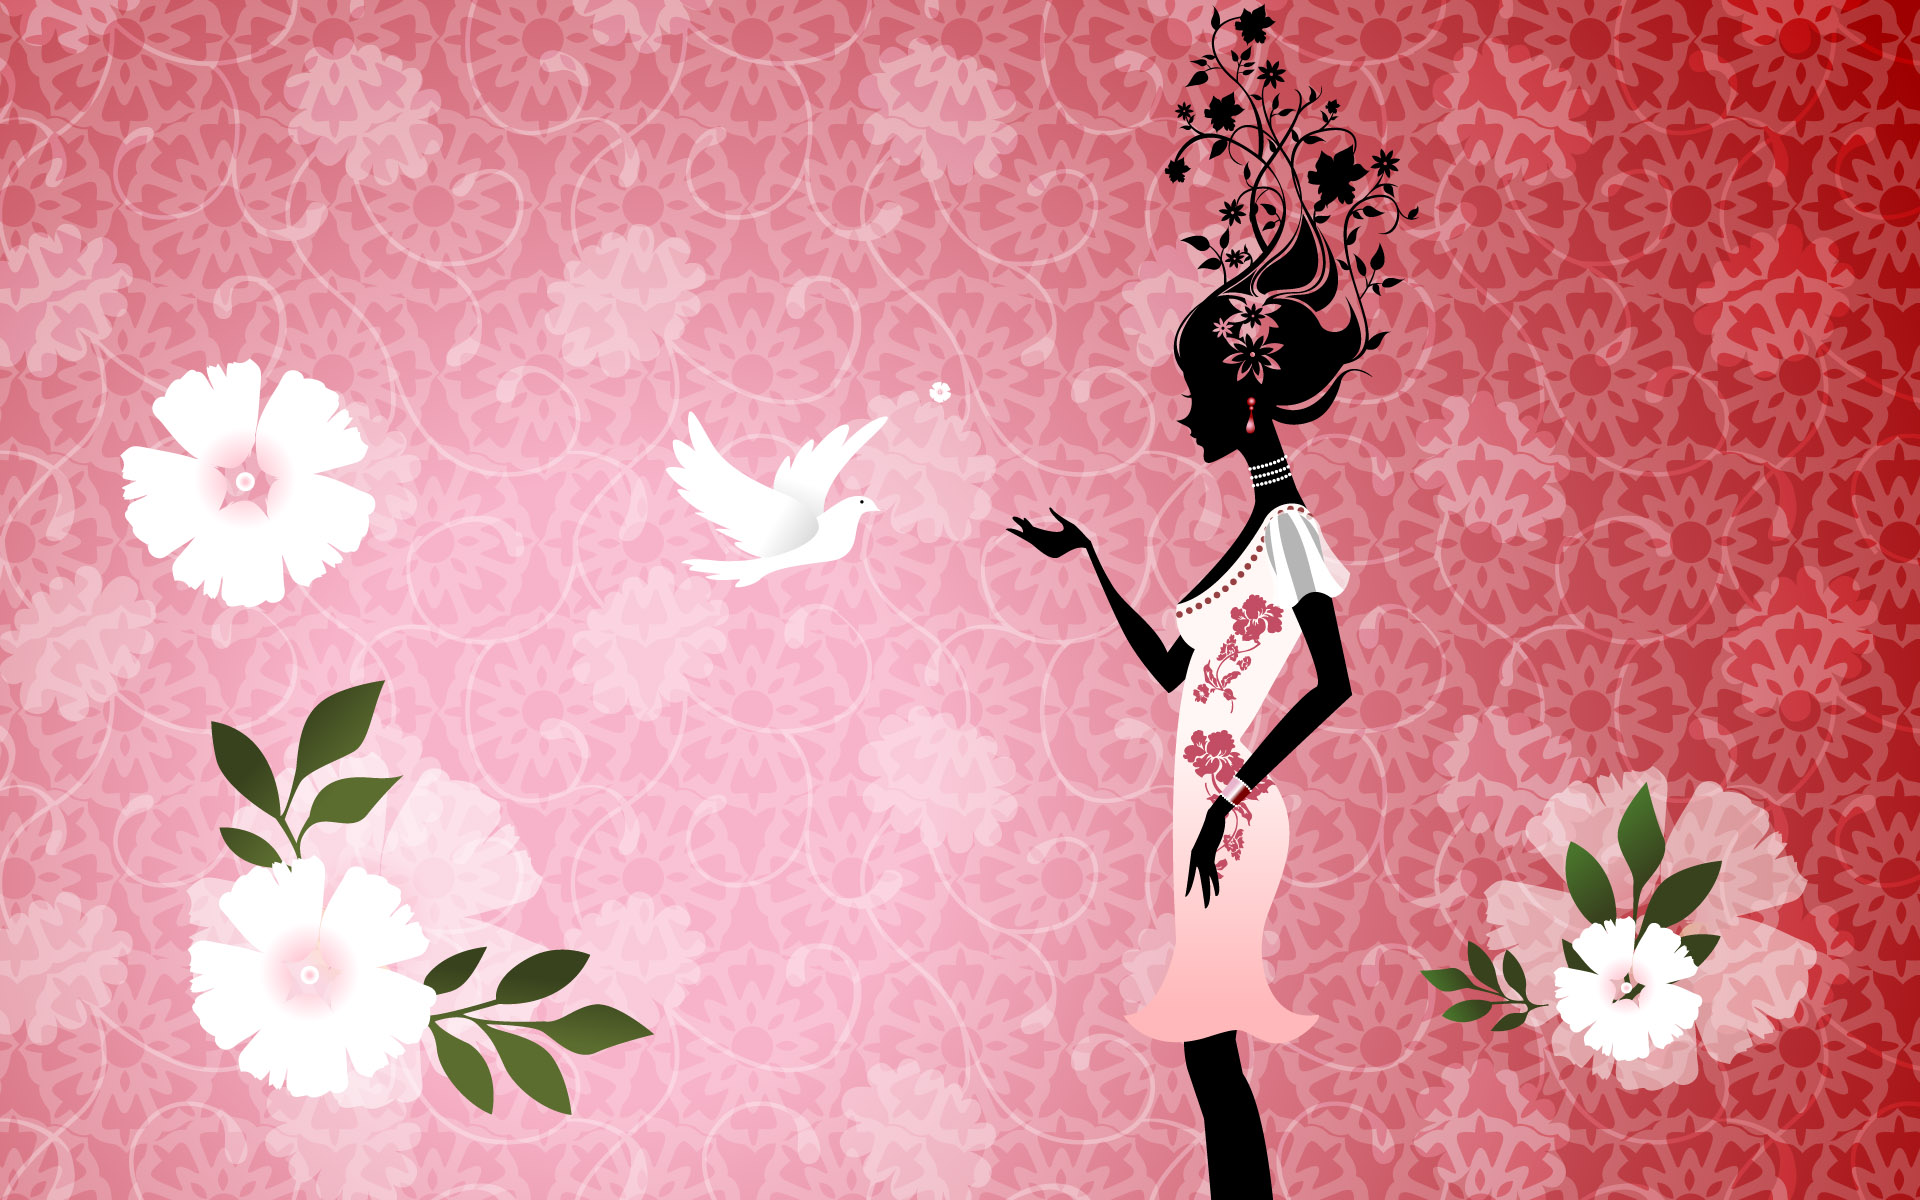 Pink Hd Abstract And Pigeon On Background Desktop 470662 Wallpaper wallpaper